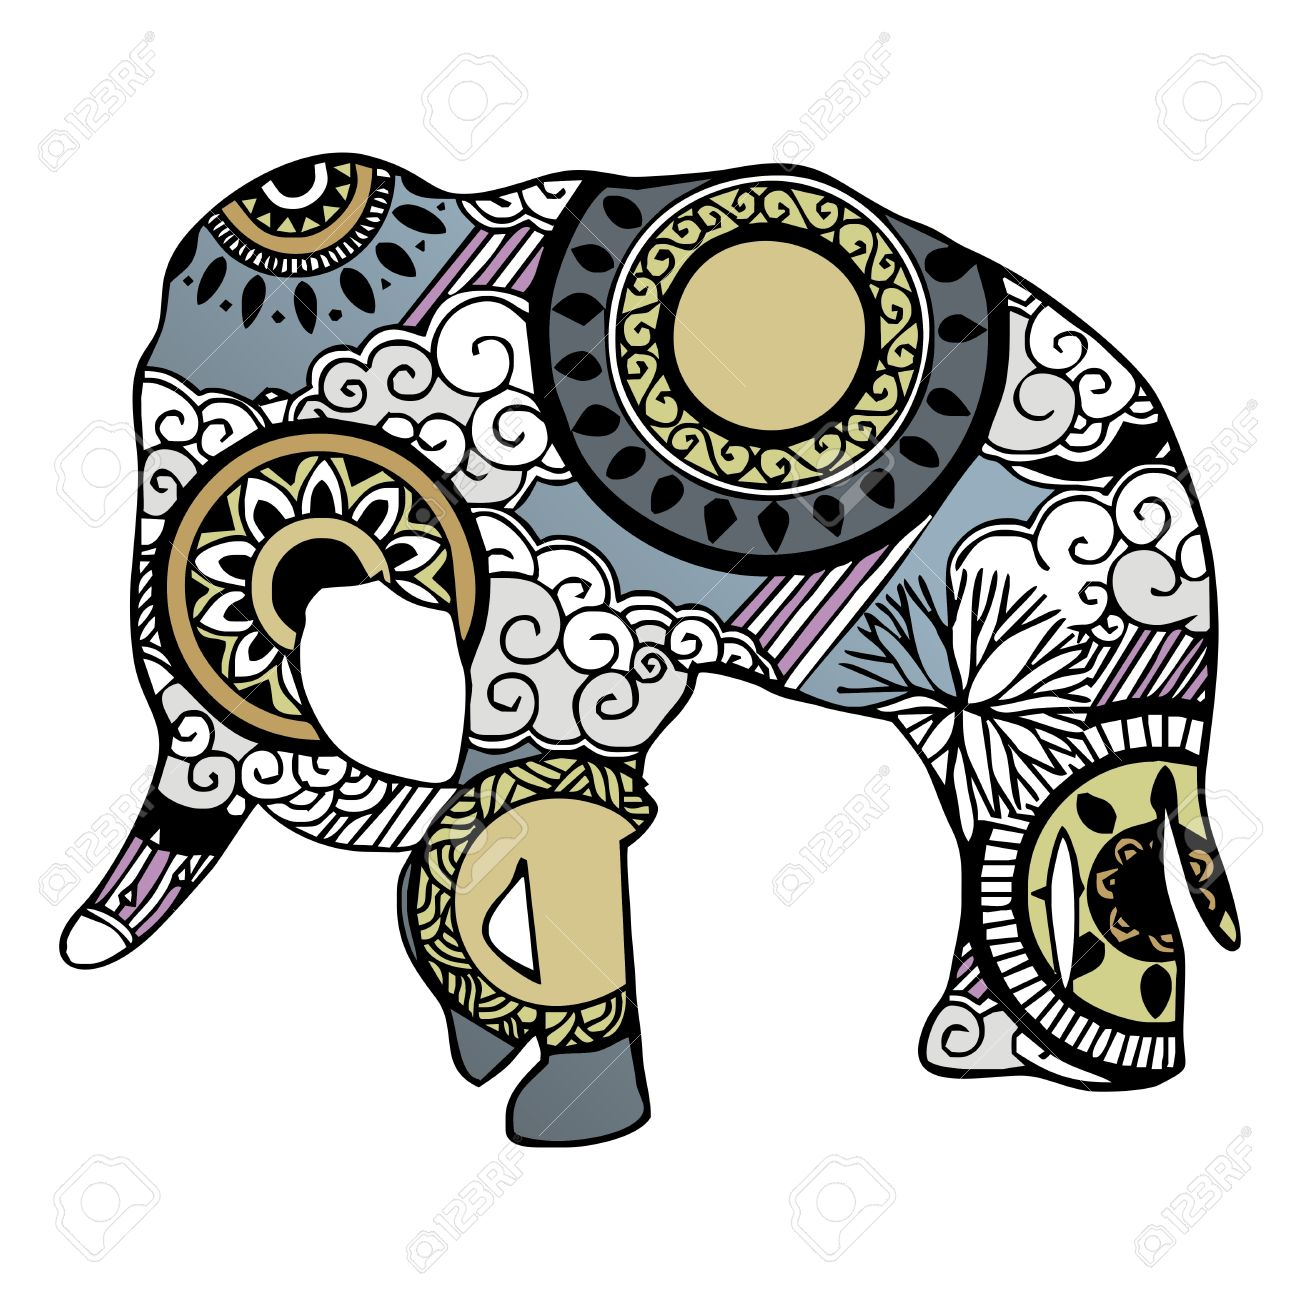 Elephant With Cloud And Rain Ornament Painting Royalty Free.